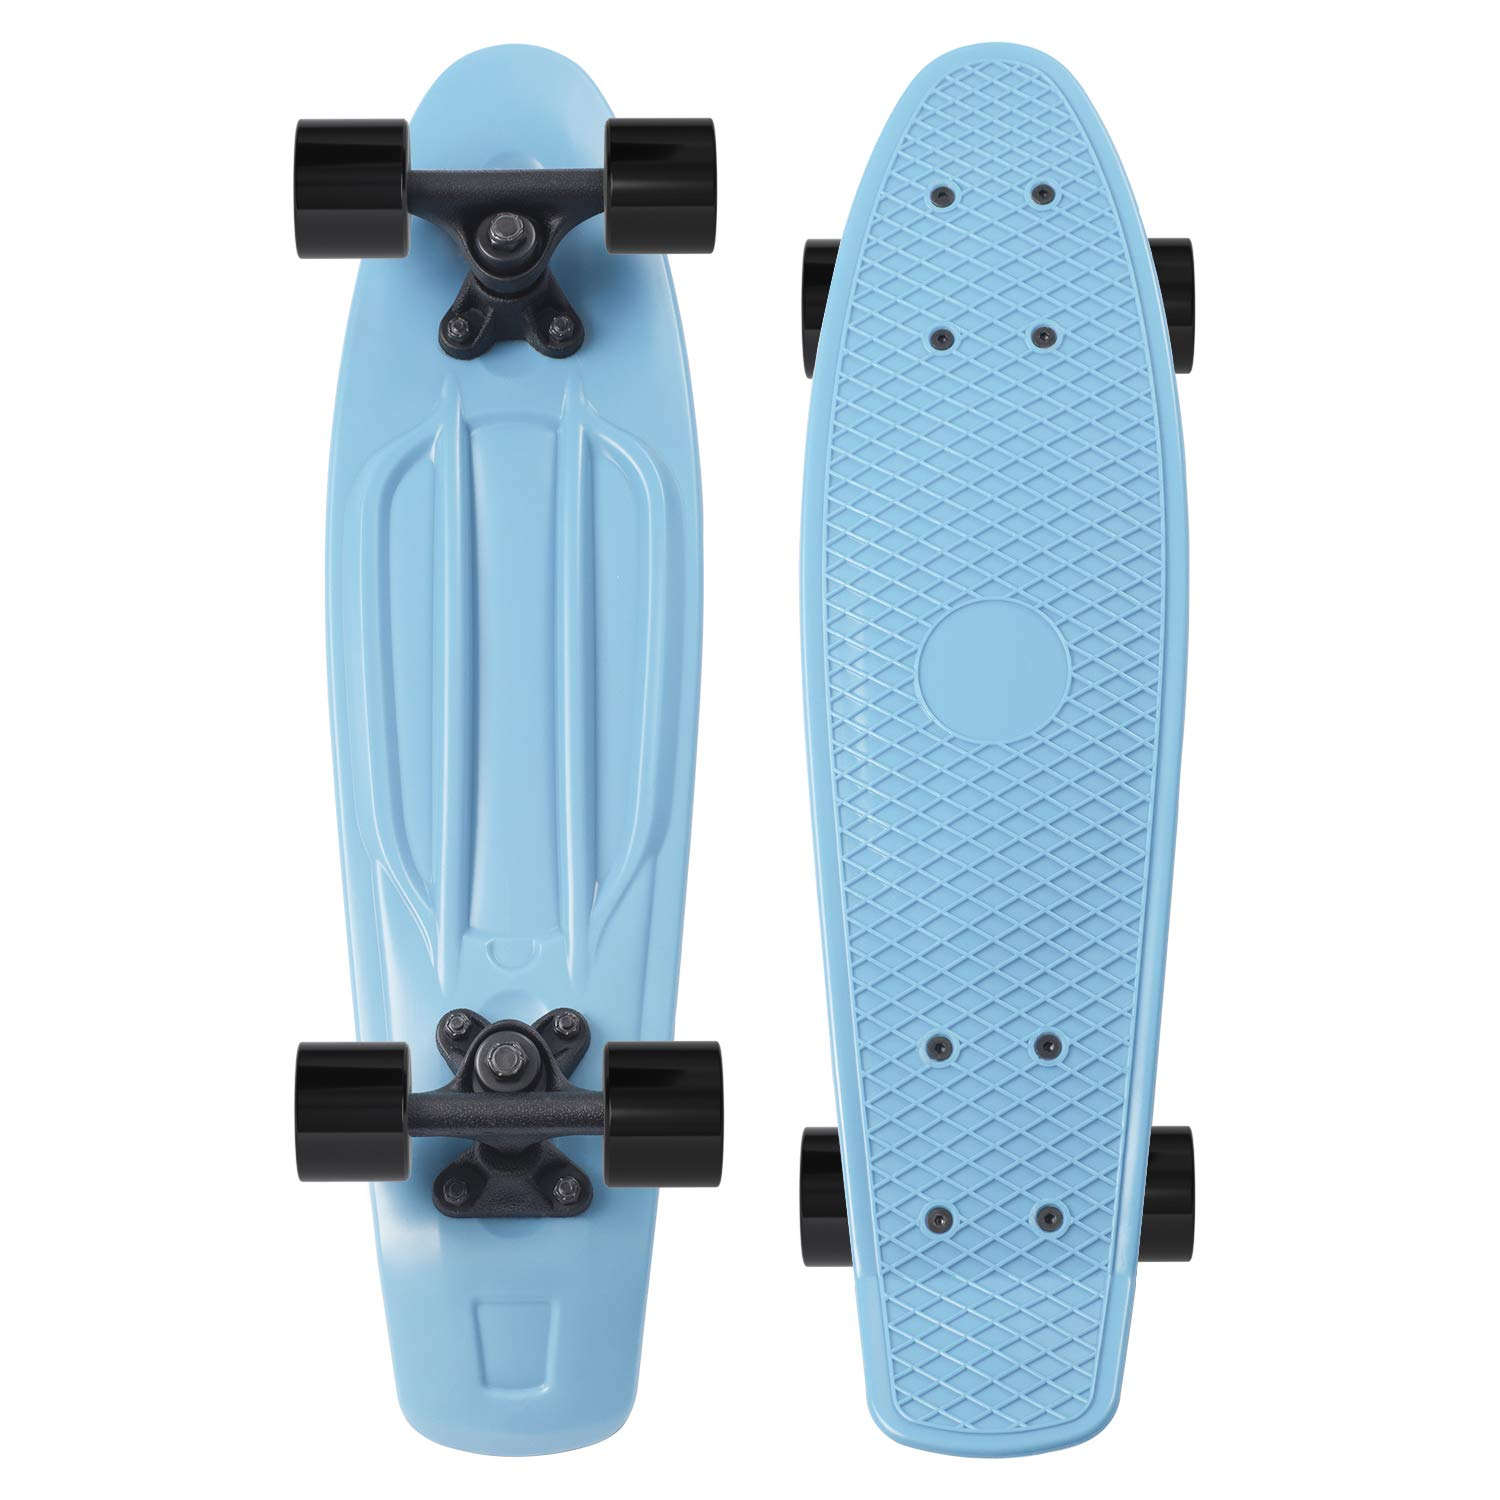 Movendless YD-0001 Quip Skateboard 22.5 Inches Classic Plastic Cruiser Skate Board, Blue